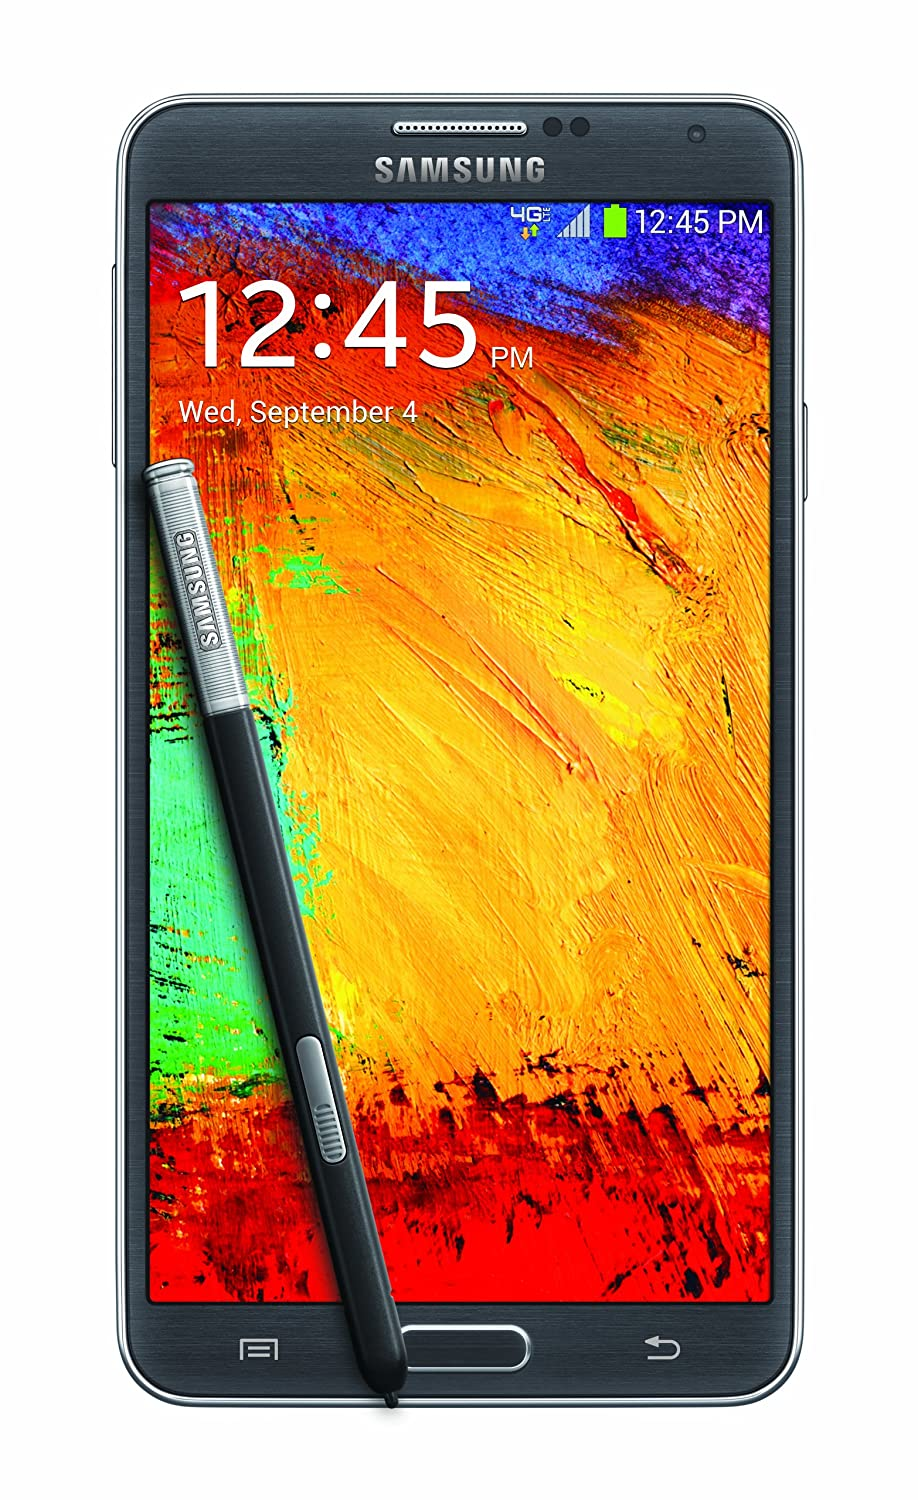 How to use scrapbook on note 3 - Amazon Com Samsung Galaxy Note 3 Black 32gb Verizon Wireless Cell Phones Accessories